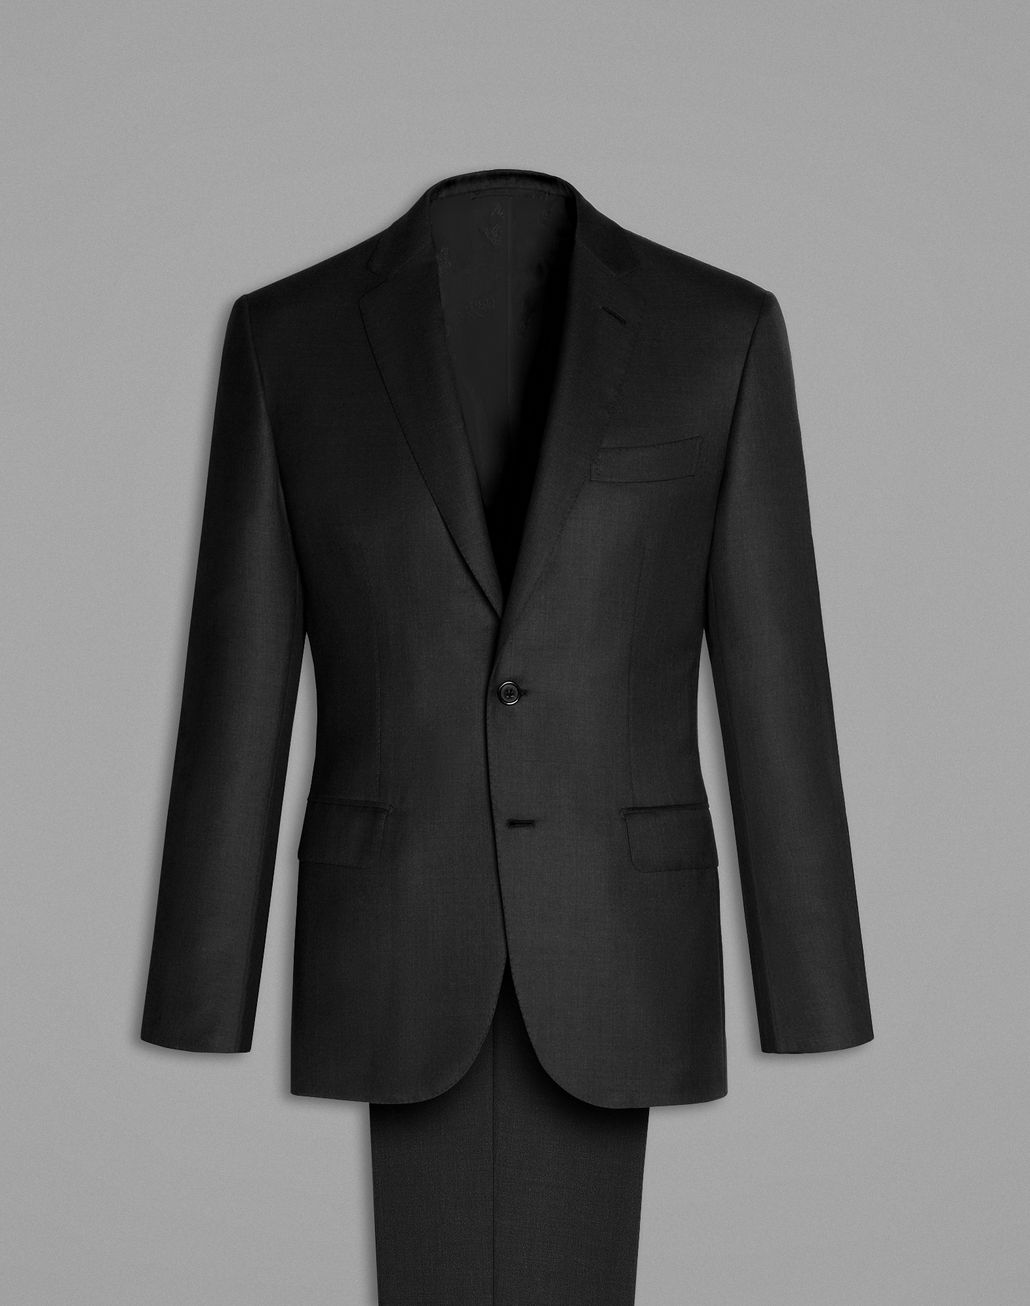 BRIONI Black Madison Suit Suits & Jackets Man f